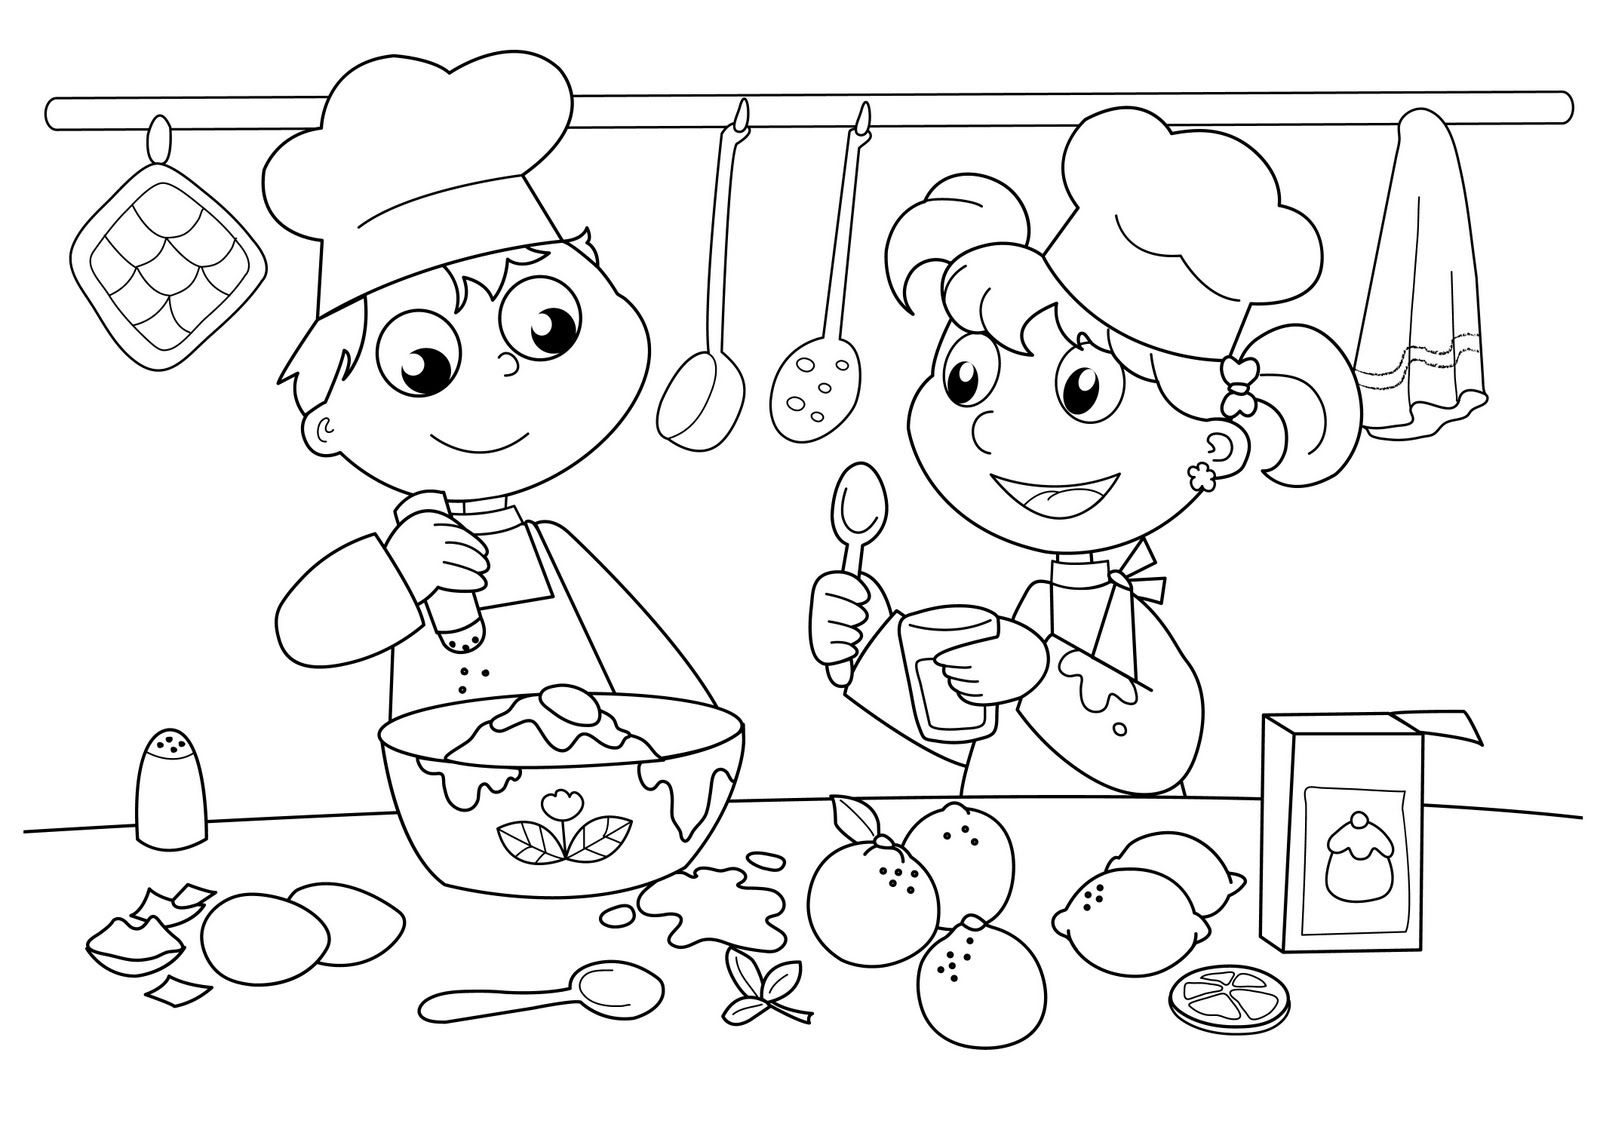 Chef Cooking Color Page Summer Coloring Pages Coloring Pages For Kids Coloring Pages